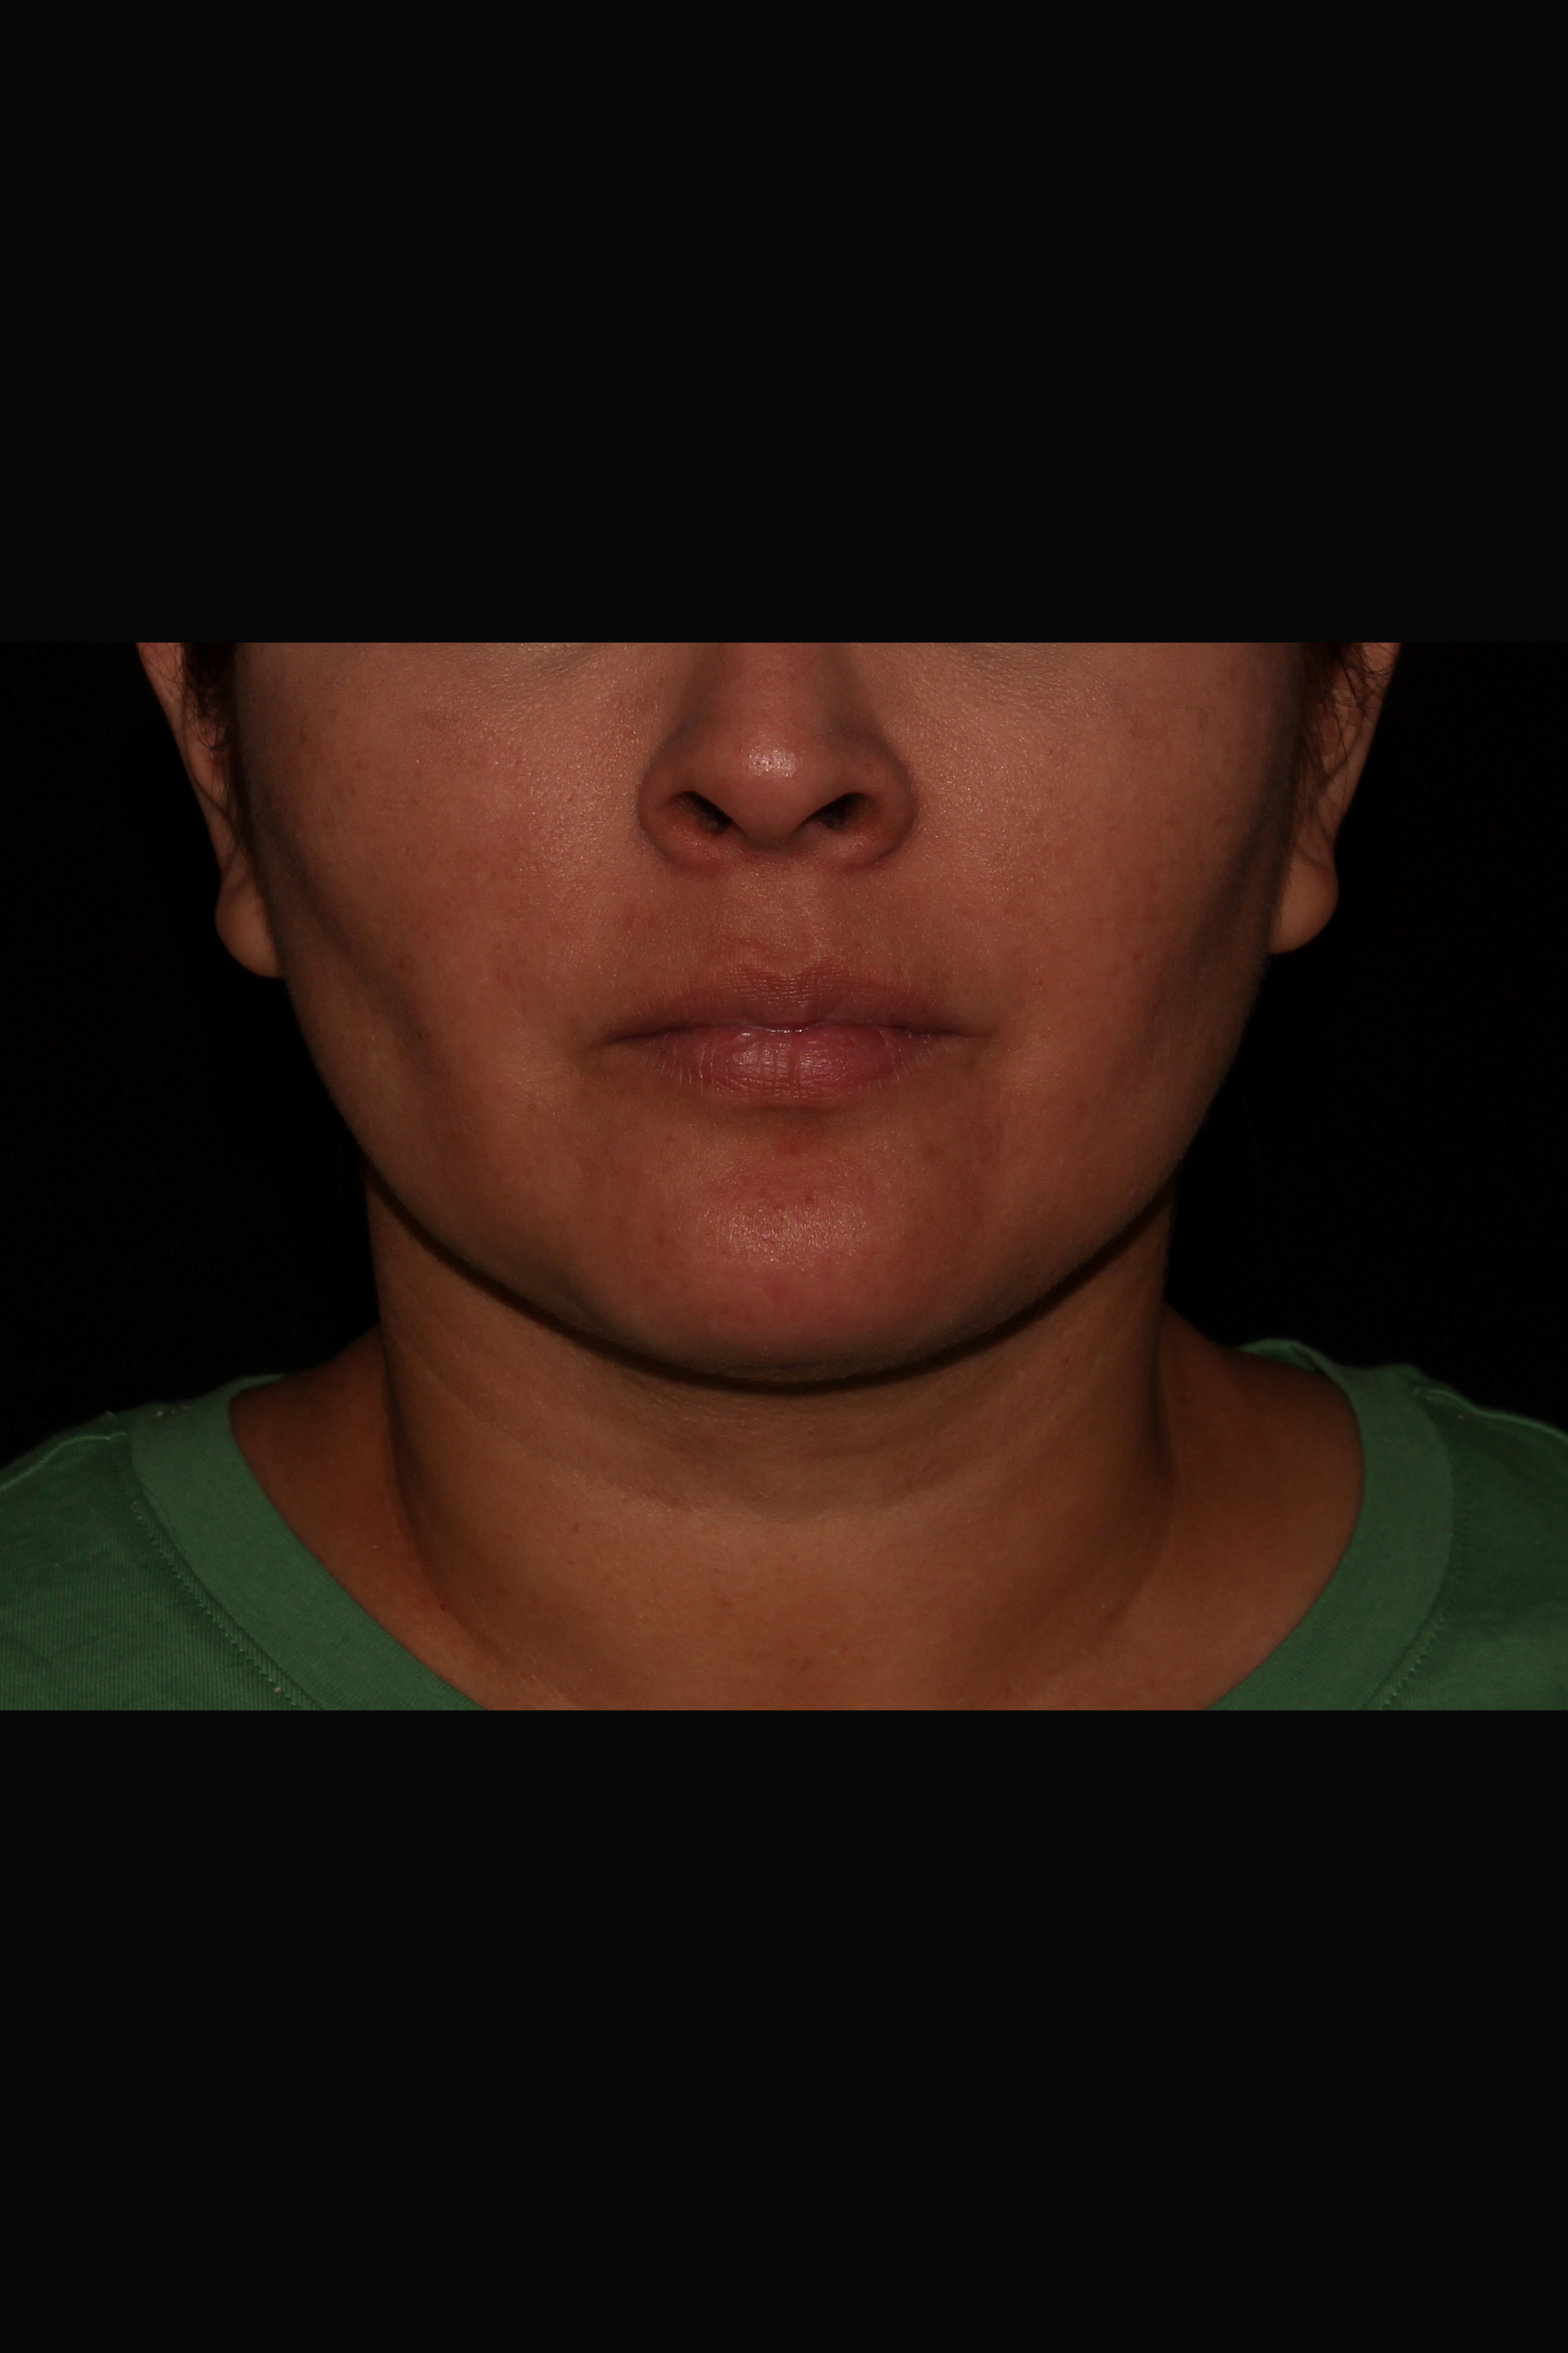 After Neck Liposuction - Front